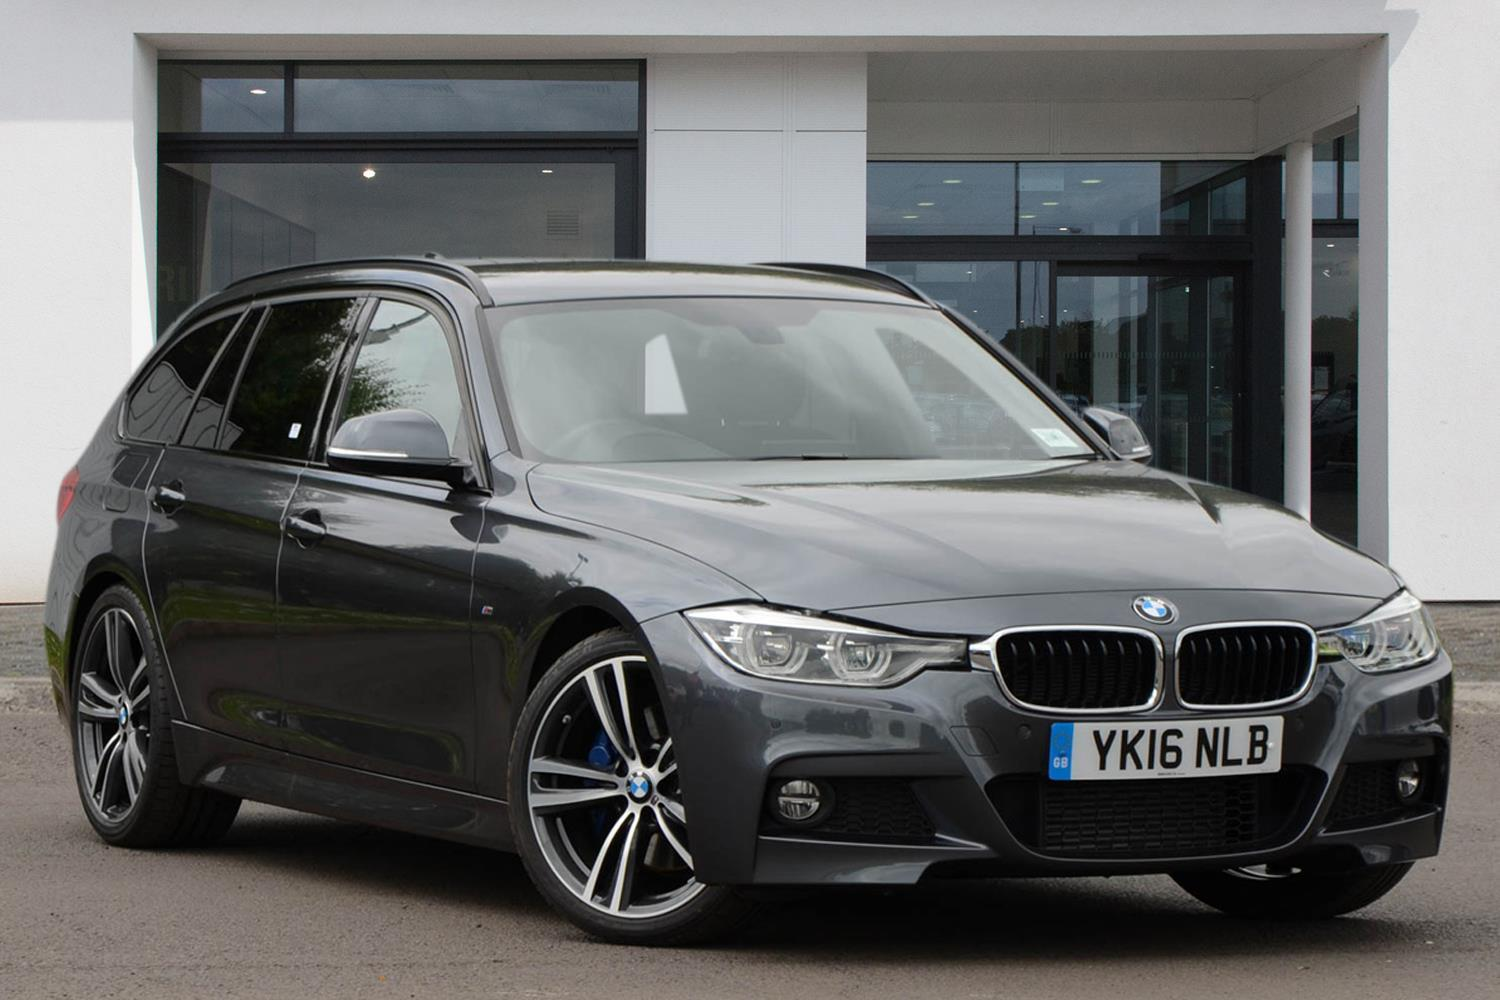 BMW 3 Series Touring YK16NLB - Image 4